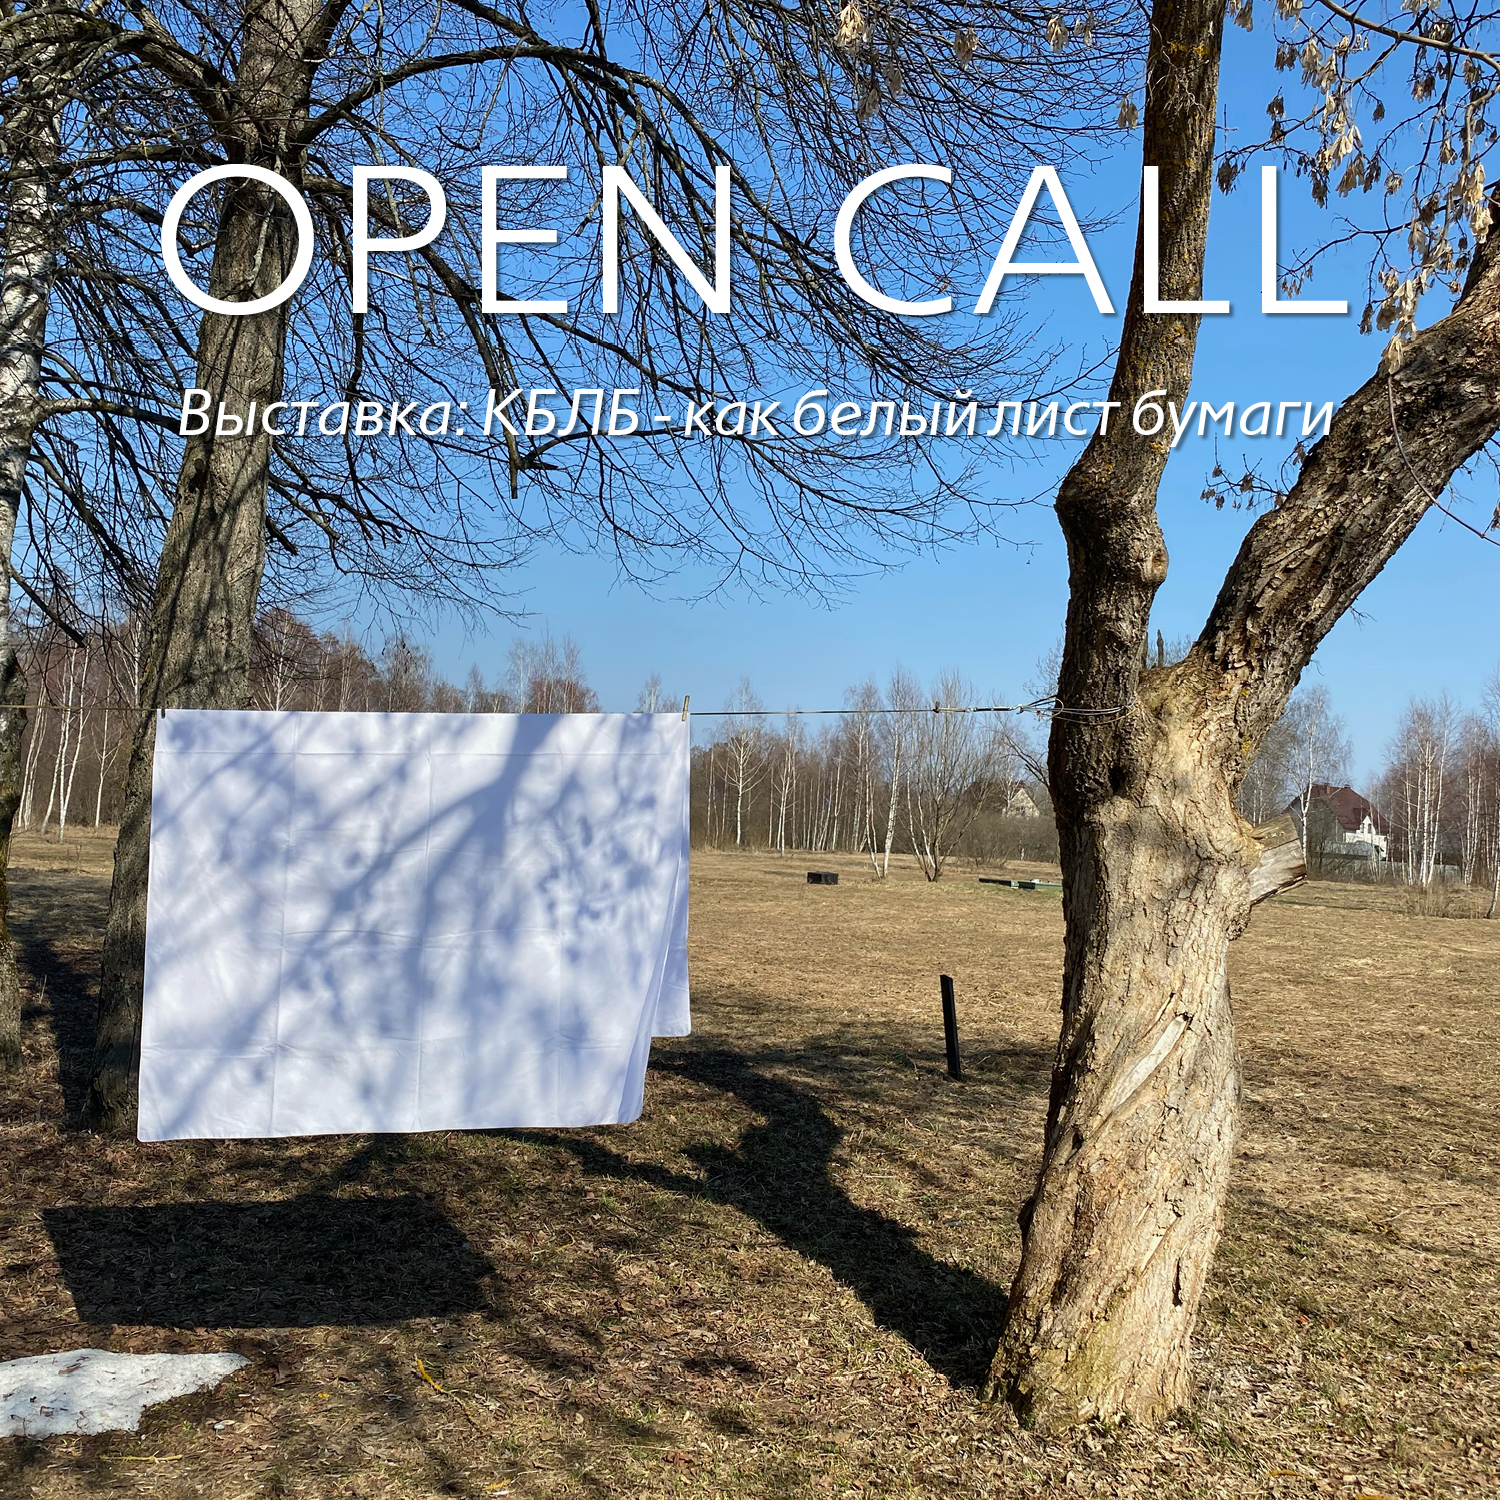 ARTISTIC OPEN CALL!